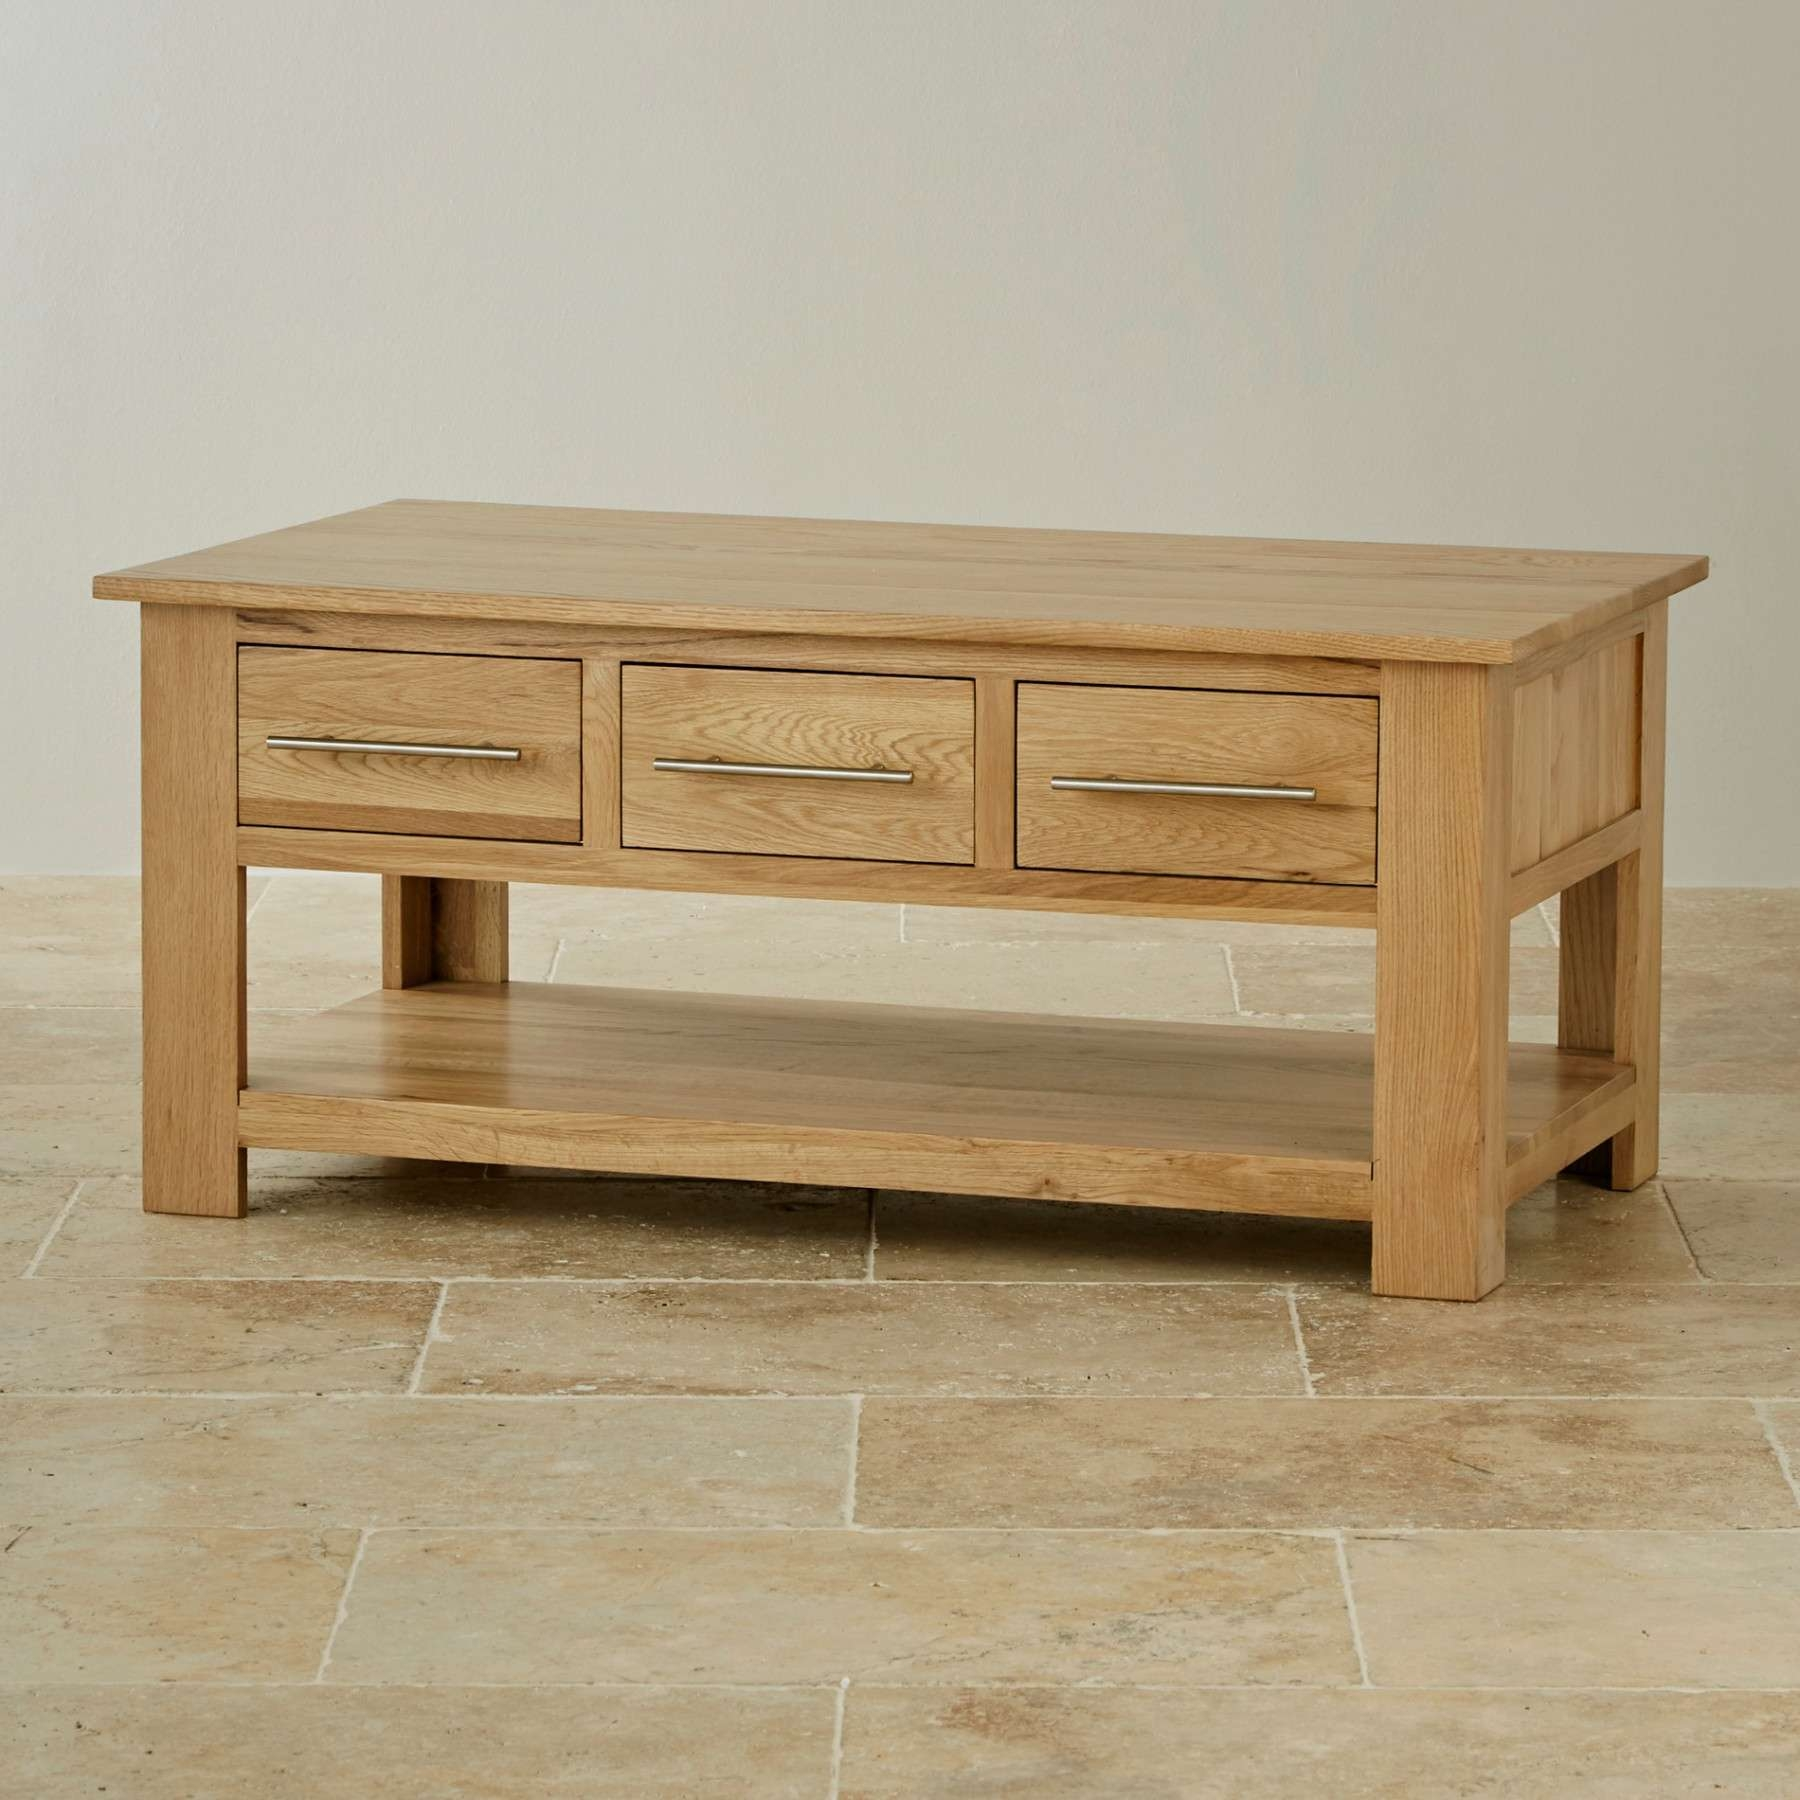 Oak Furniture Land With Best And Newest Solid Oak Coffee Tables (View 8 of 20)